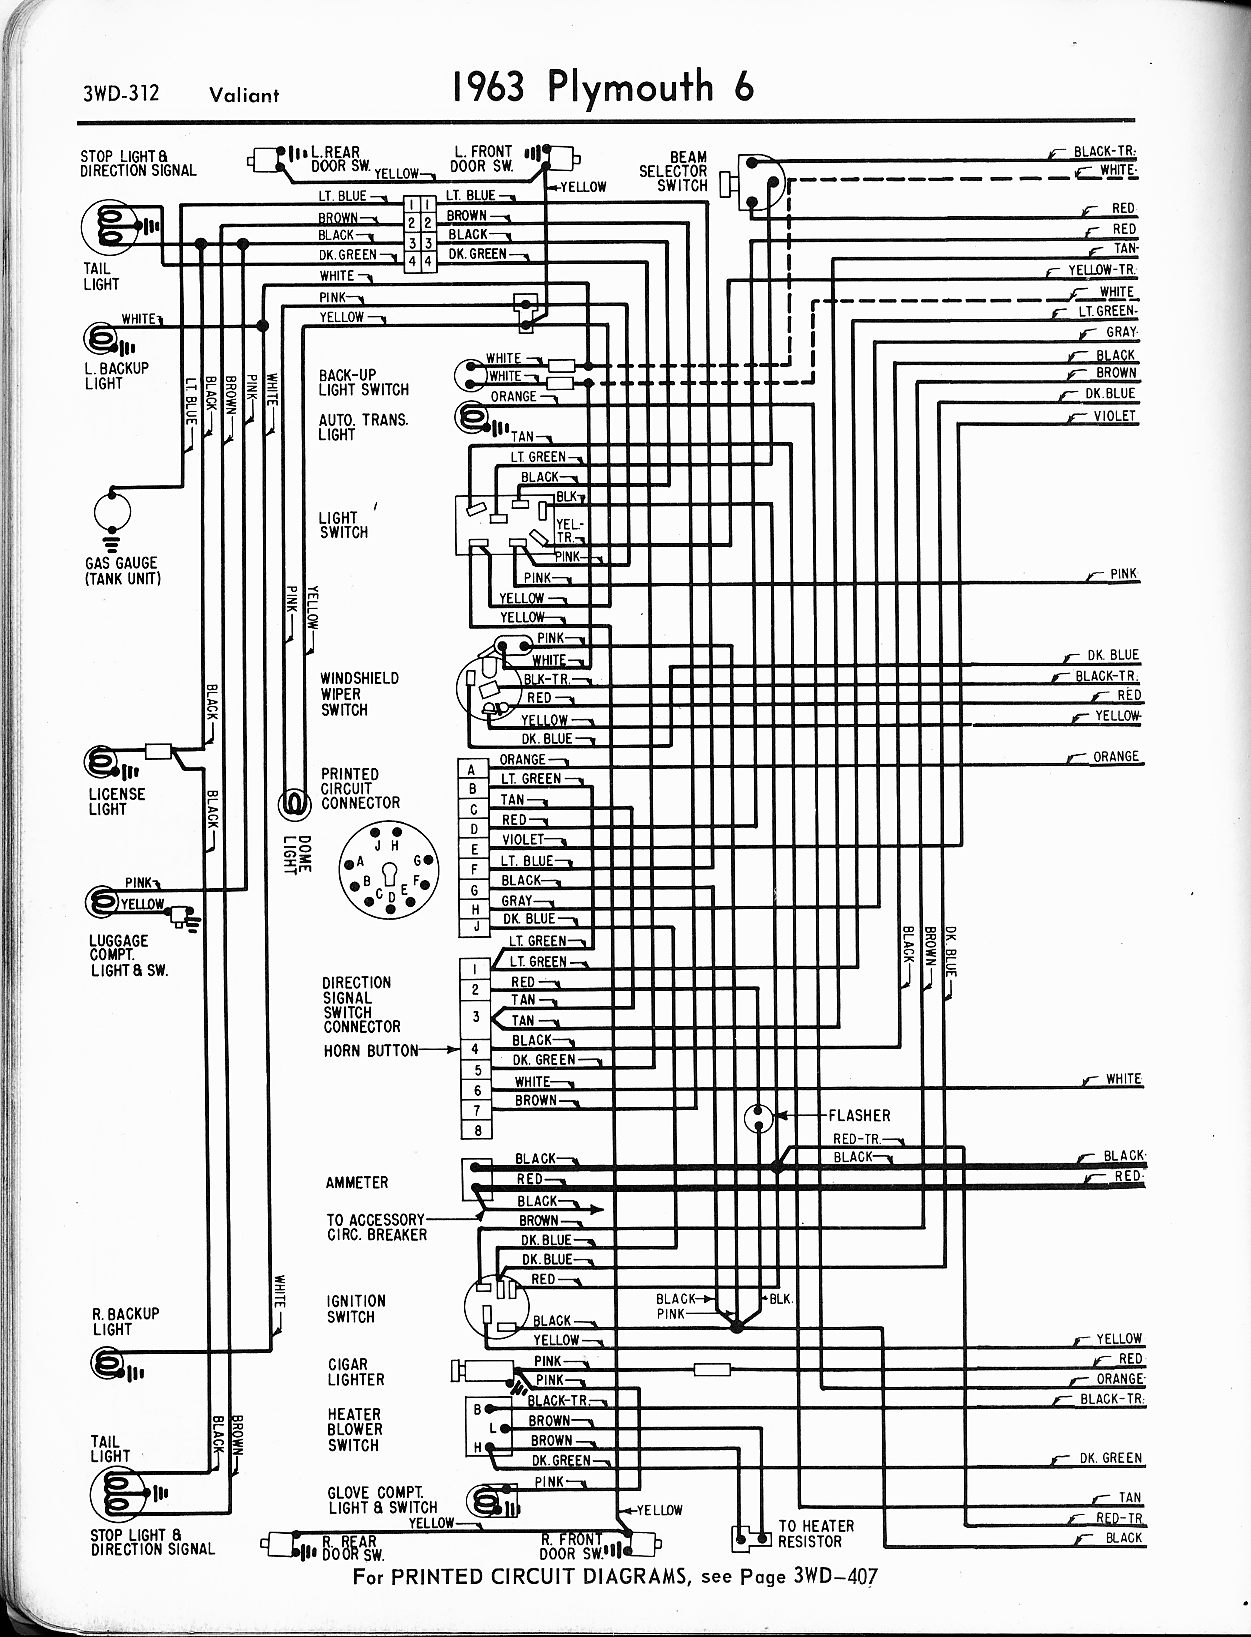 63 Plymouth Wiring Diagram - Wiring Diagrams DataUssel